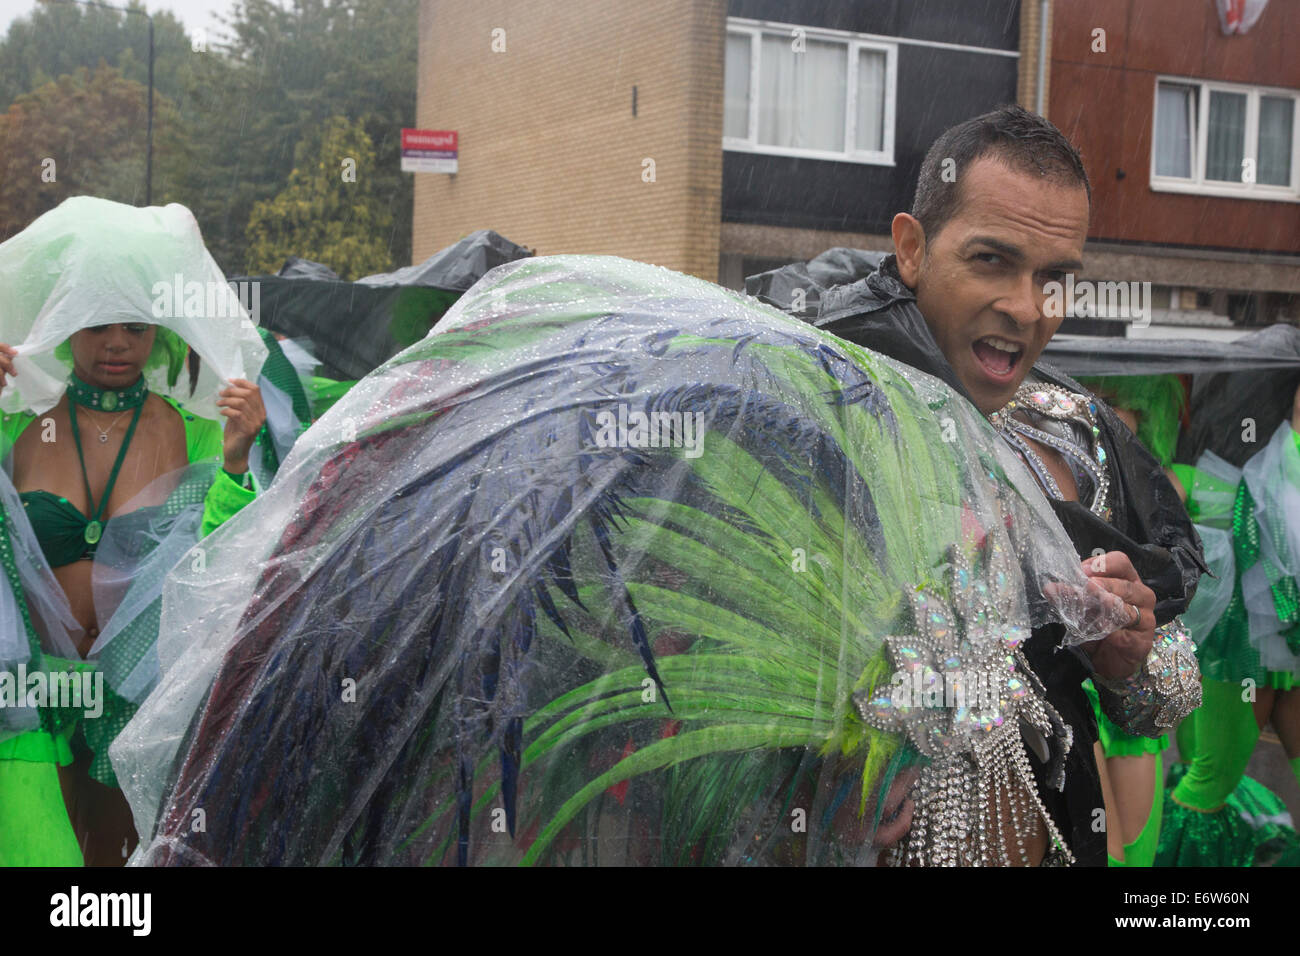 Samba Dancer from the London School of Samba covers his feathers from the rain at the Notting Hill Carnival parade - Stock Image